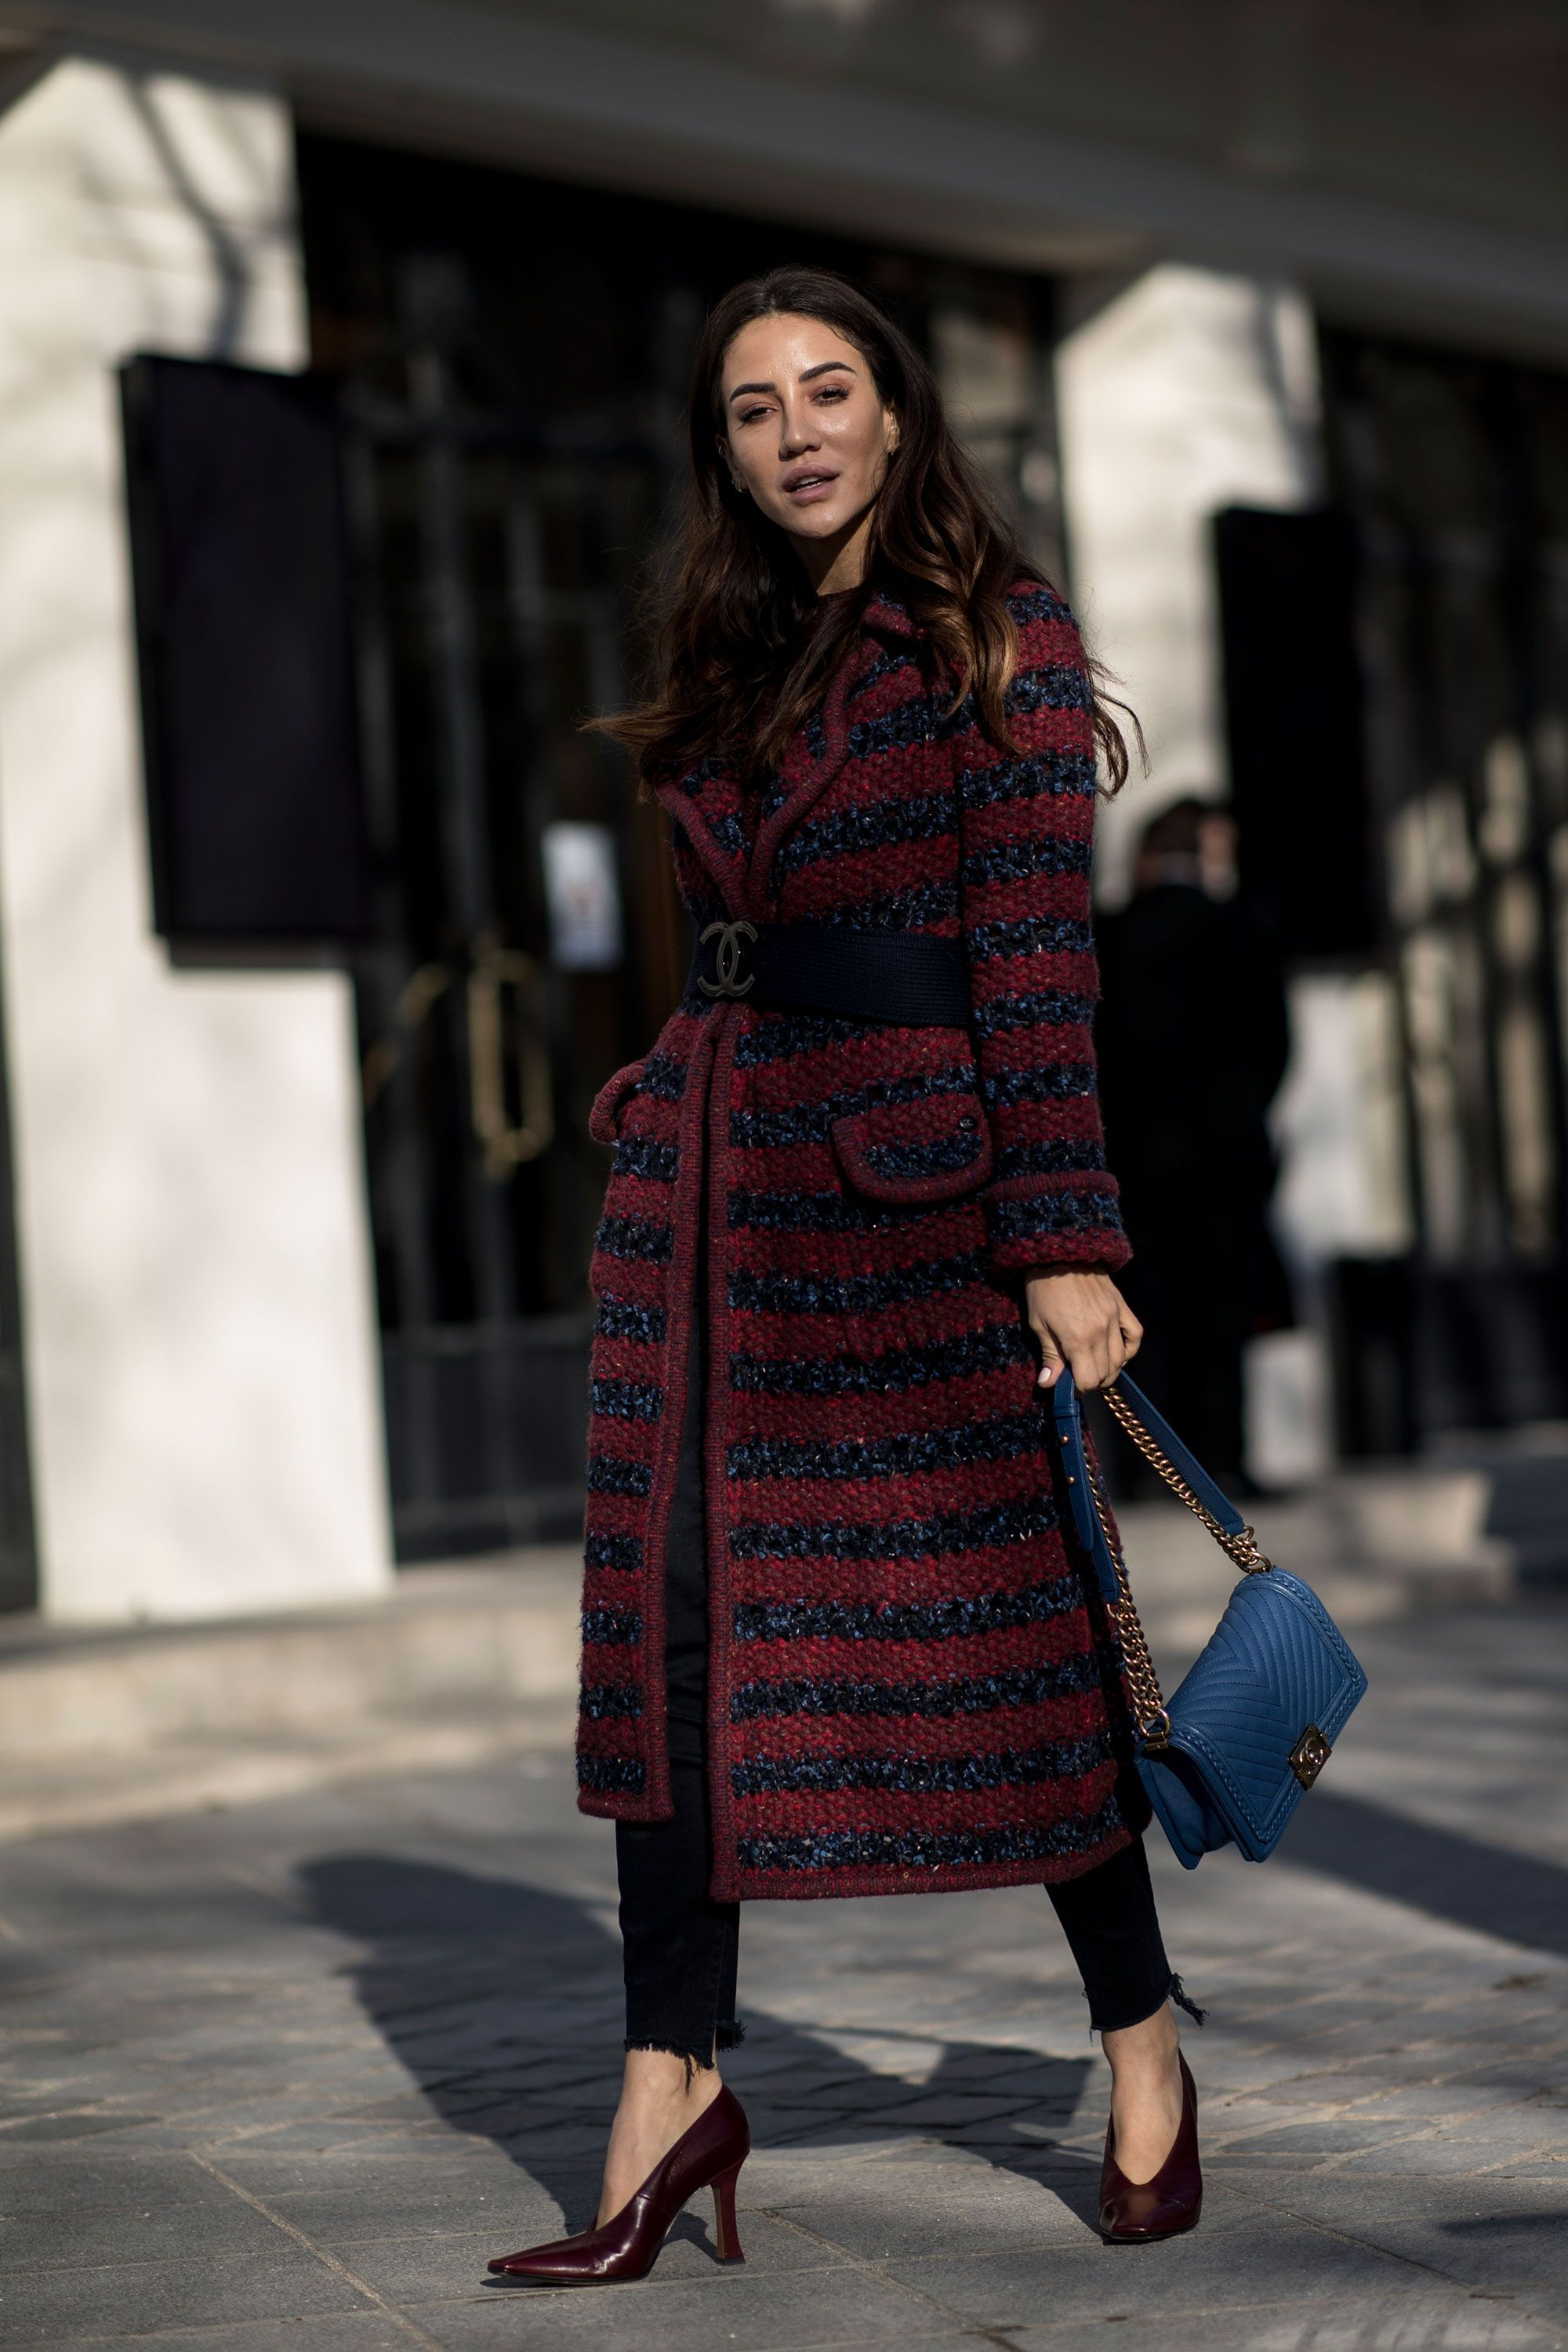 6a60bdaf91 The best street style from Couture Fashion Week – Street style inspiration  from Paris